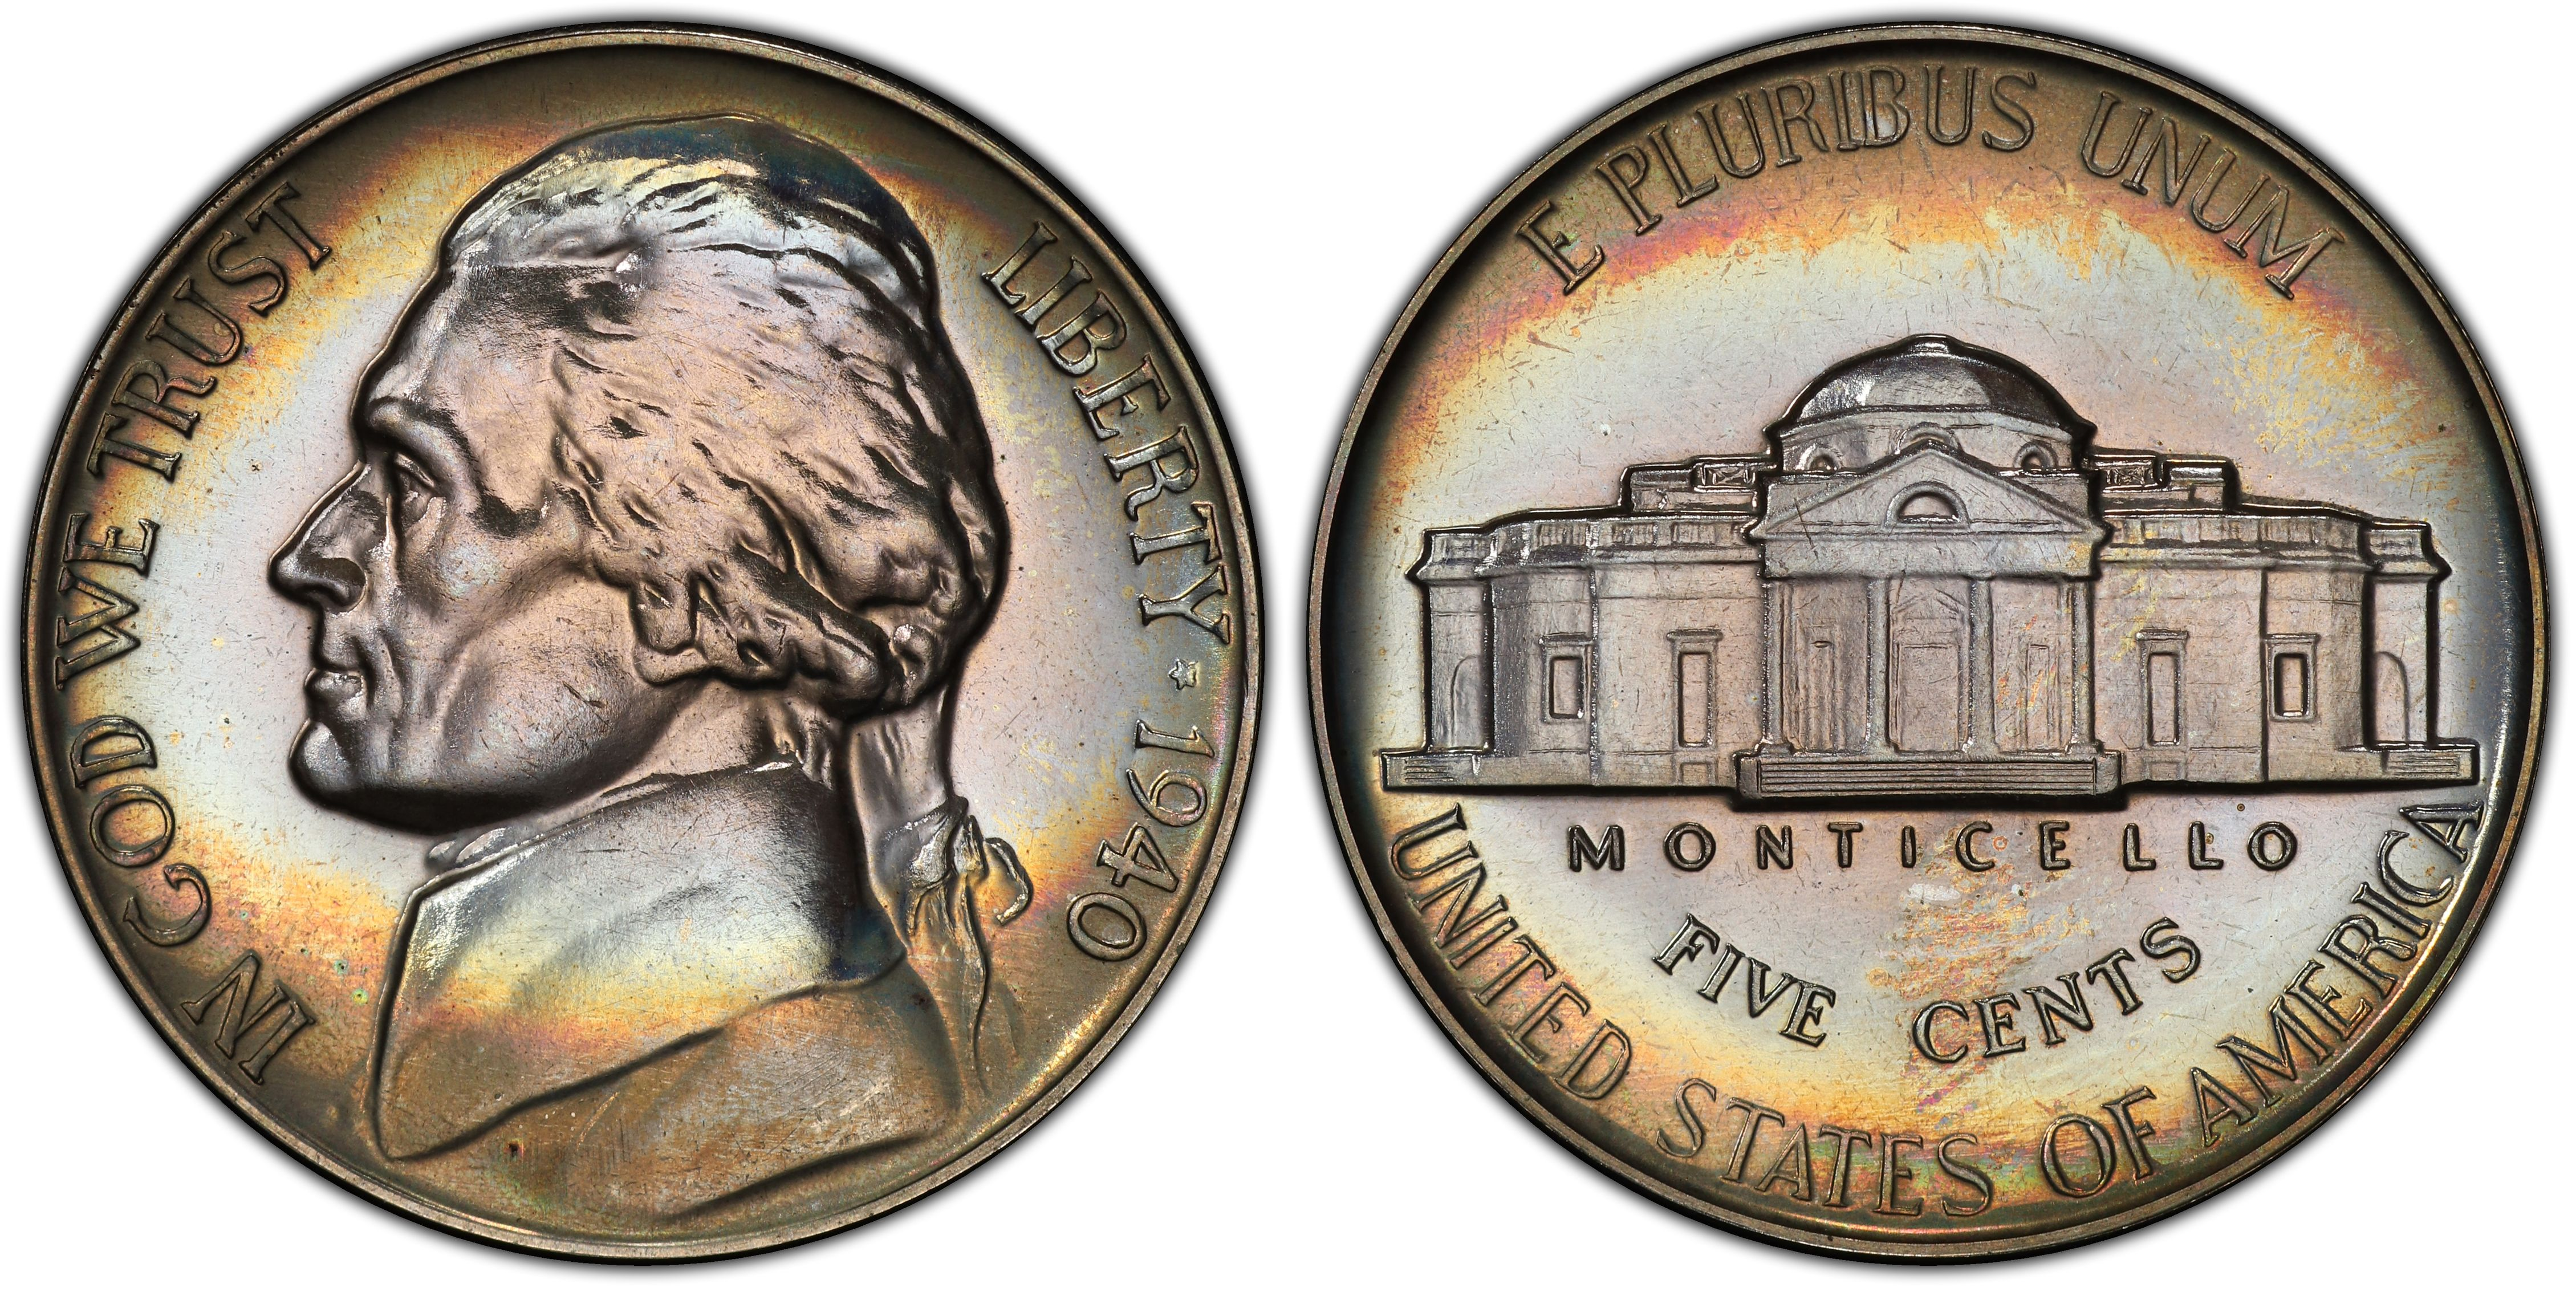 1977-S Proof Jefferson Nickel Full Steps Nice Coins Priced Right Shipped FREE